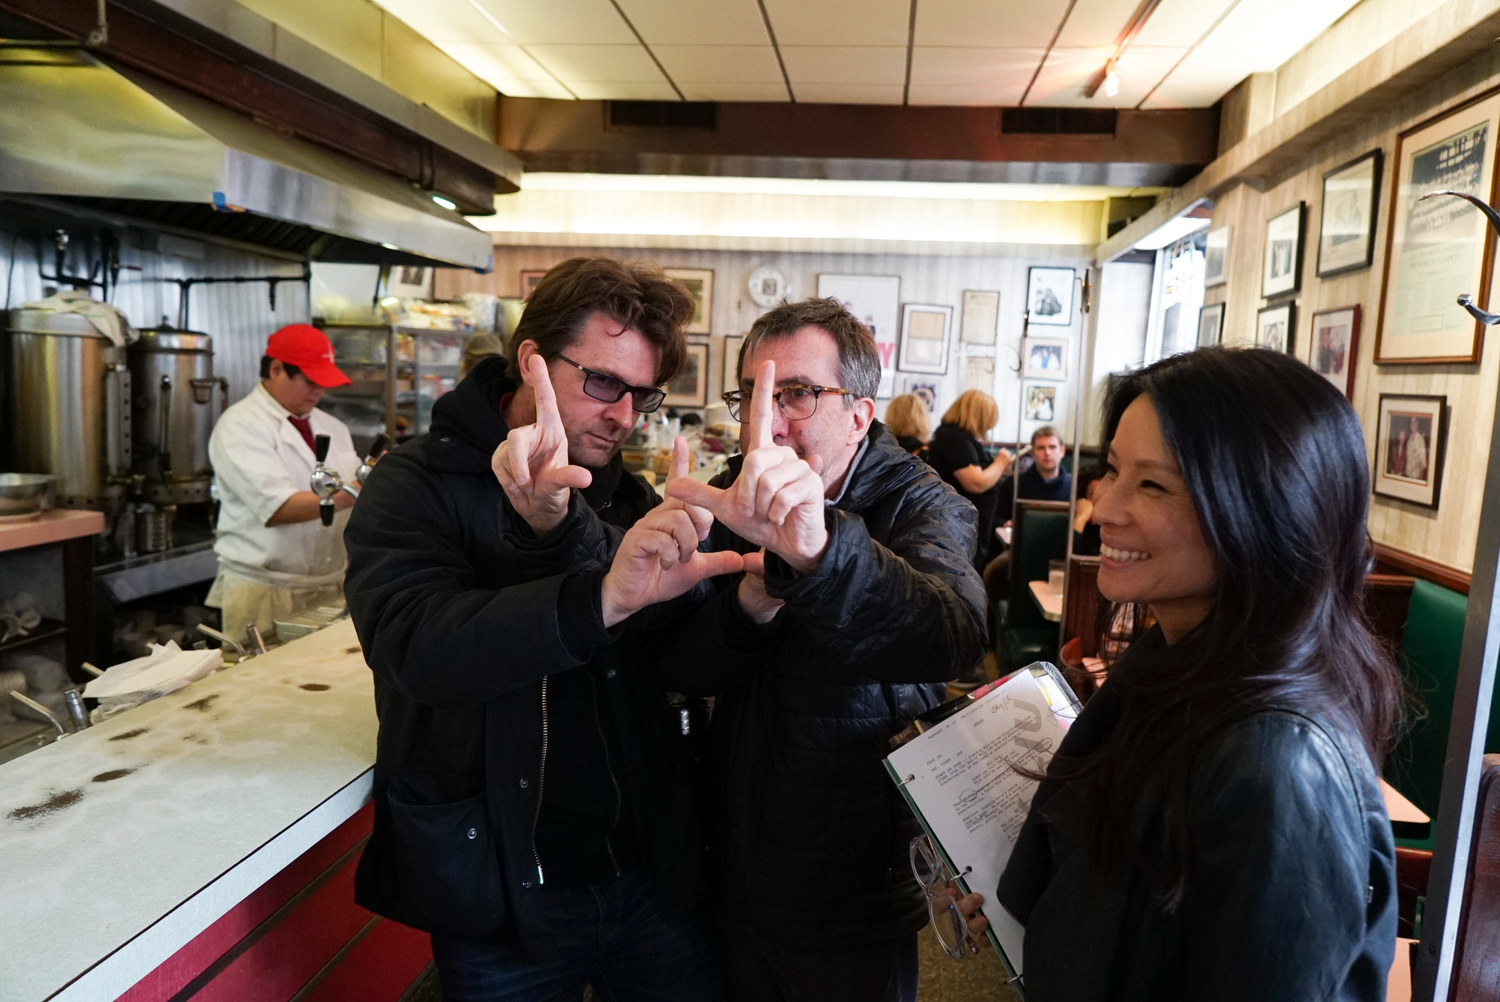 The team makes sure to get the diner shots just right